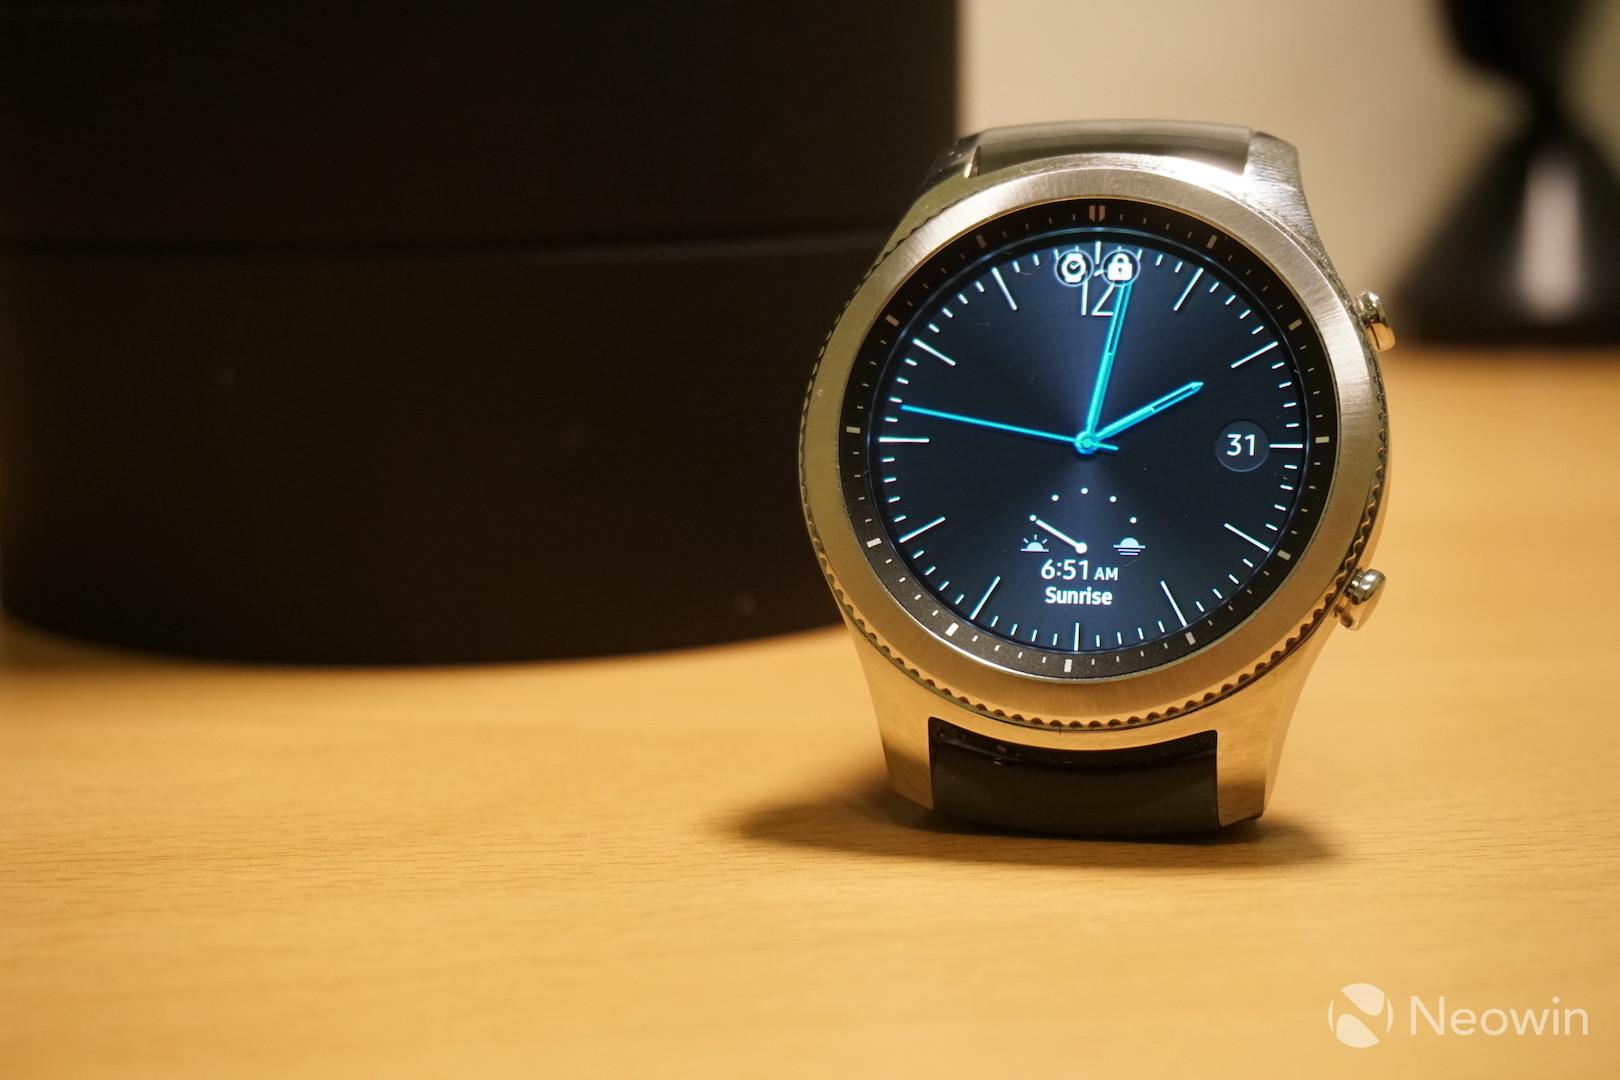 Samsung Gear S3 Gets Tizen 3.0 Software Update